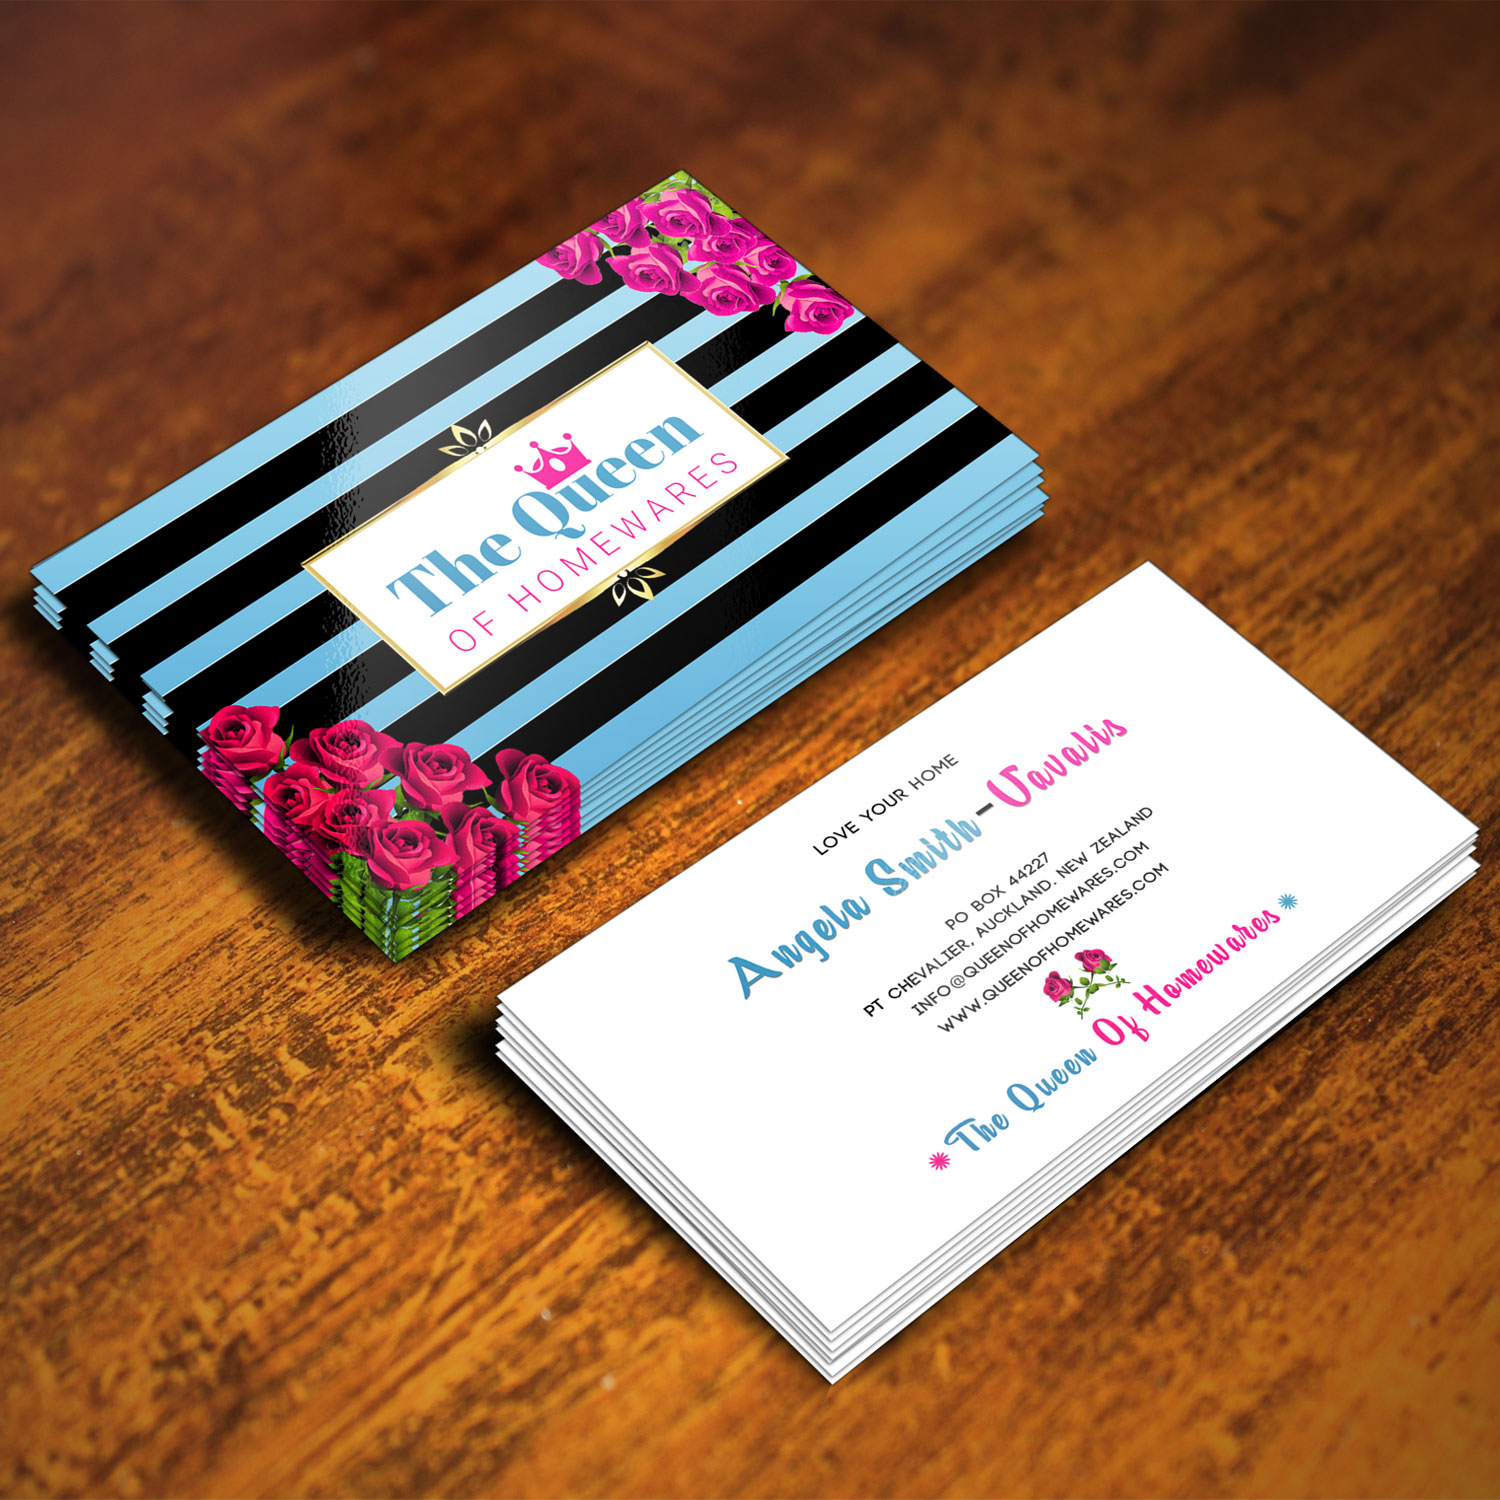 Upmarket bold business business card design for queen of homewares business card design by xclusive designer for queen of homewares design 17687603 reheart Image collections